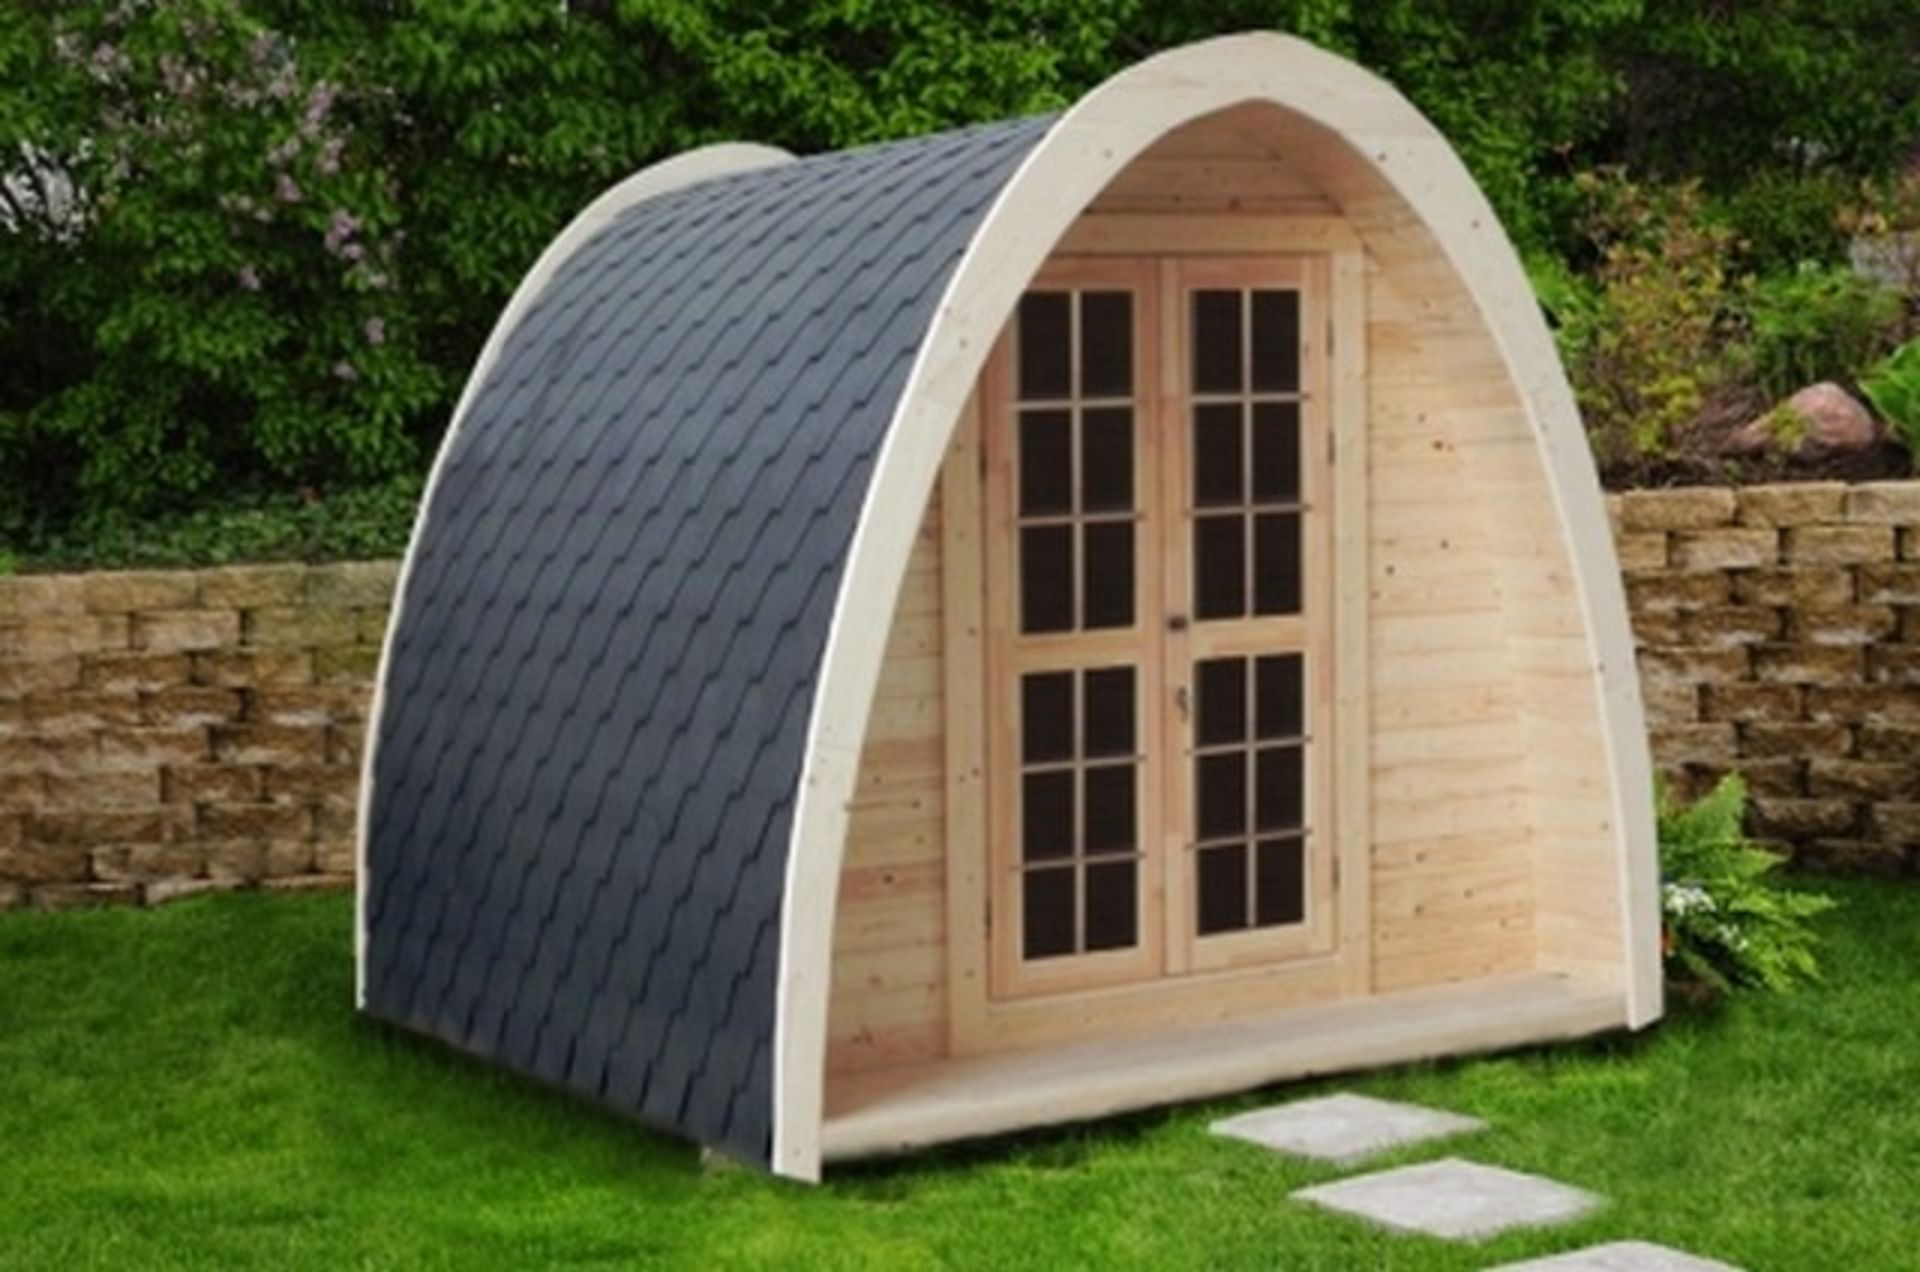 Lot 18042 - V Brand New 4 x 2.4m Camping Pod Made from Spruce - Double doors with Lock and Double Glass